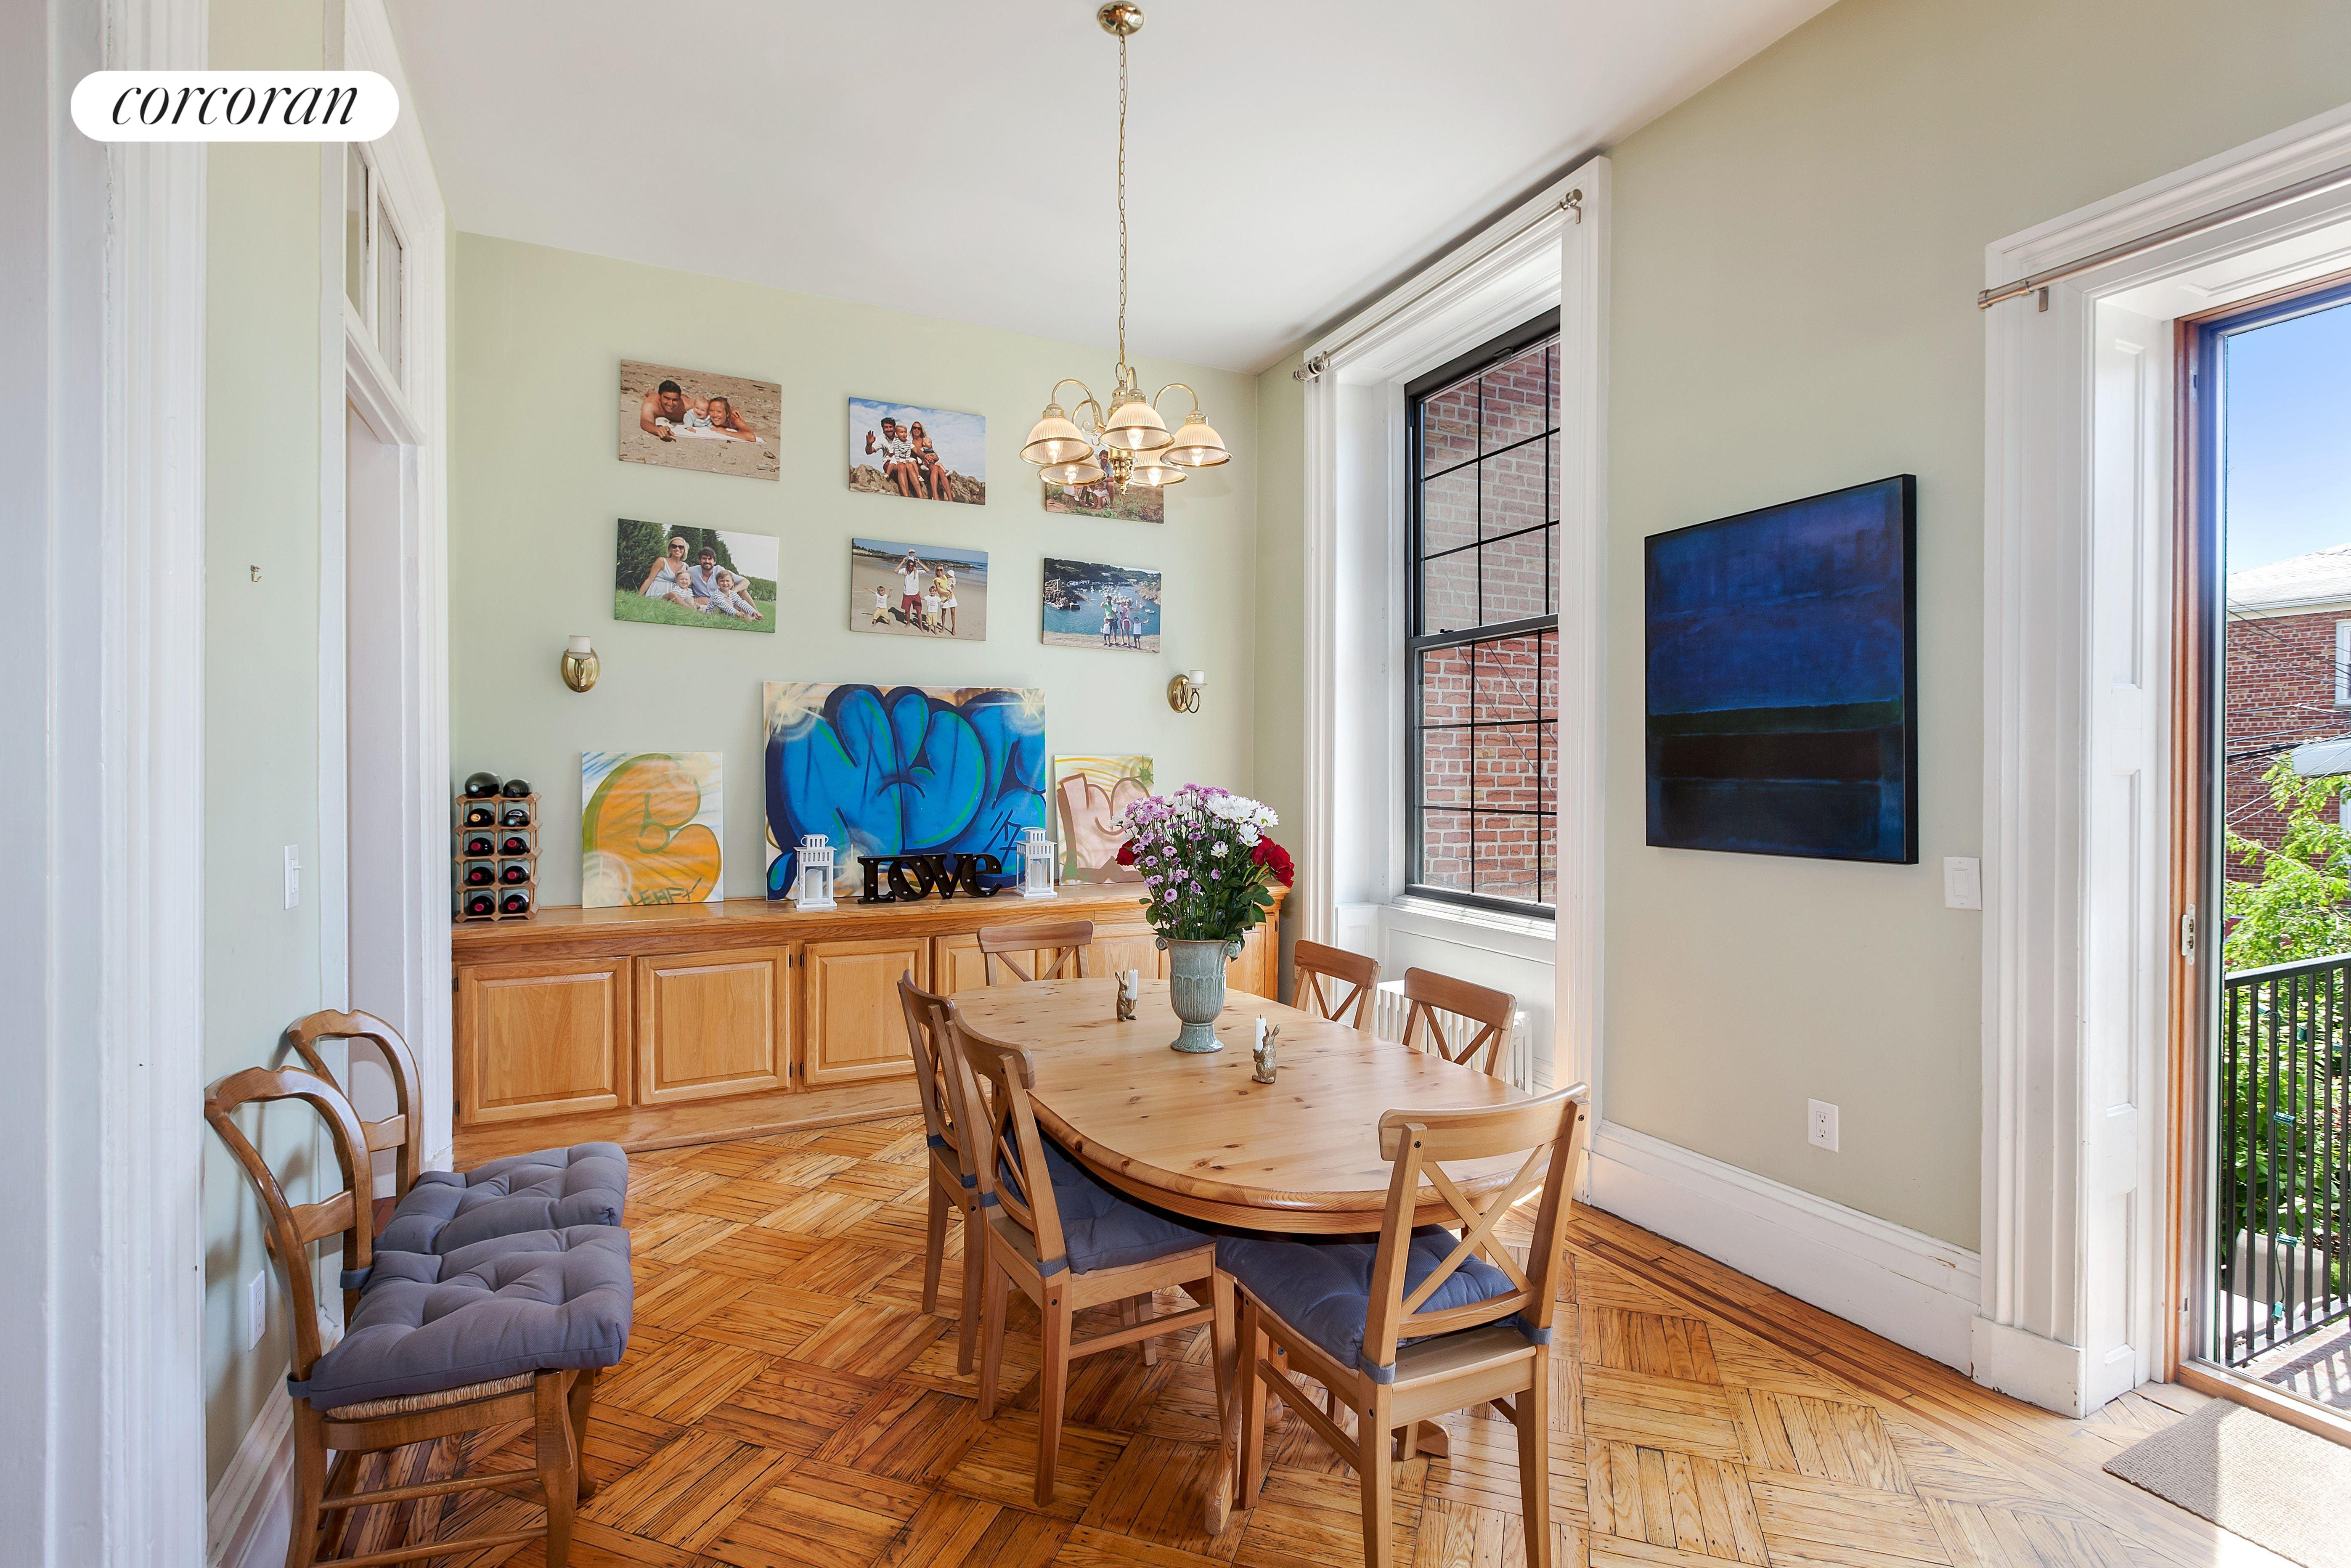 112 2nd Place, high ceilings and decorative molding throughout